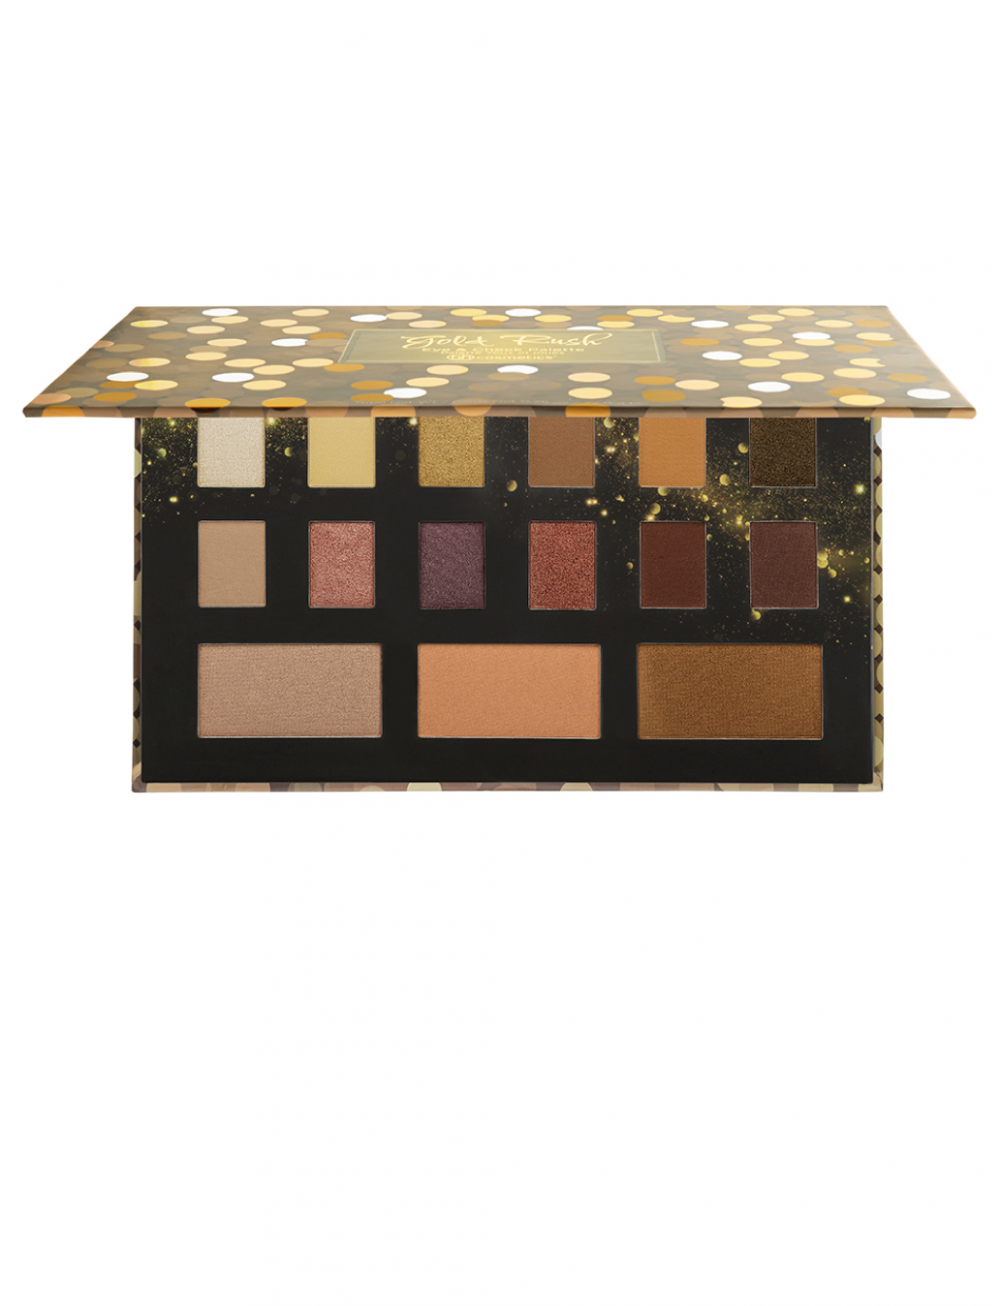 BH COSMETICS GOLD RUSH EYE & CHEEK PALETTE